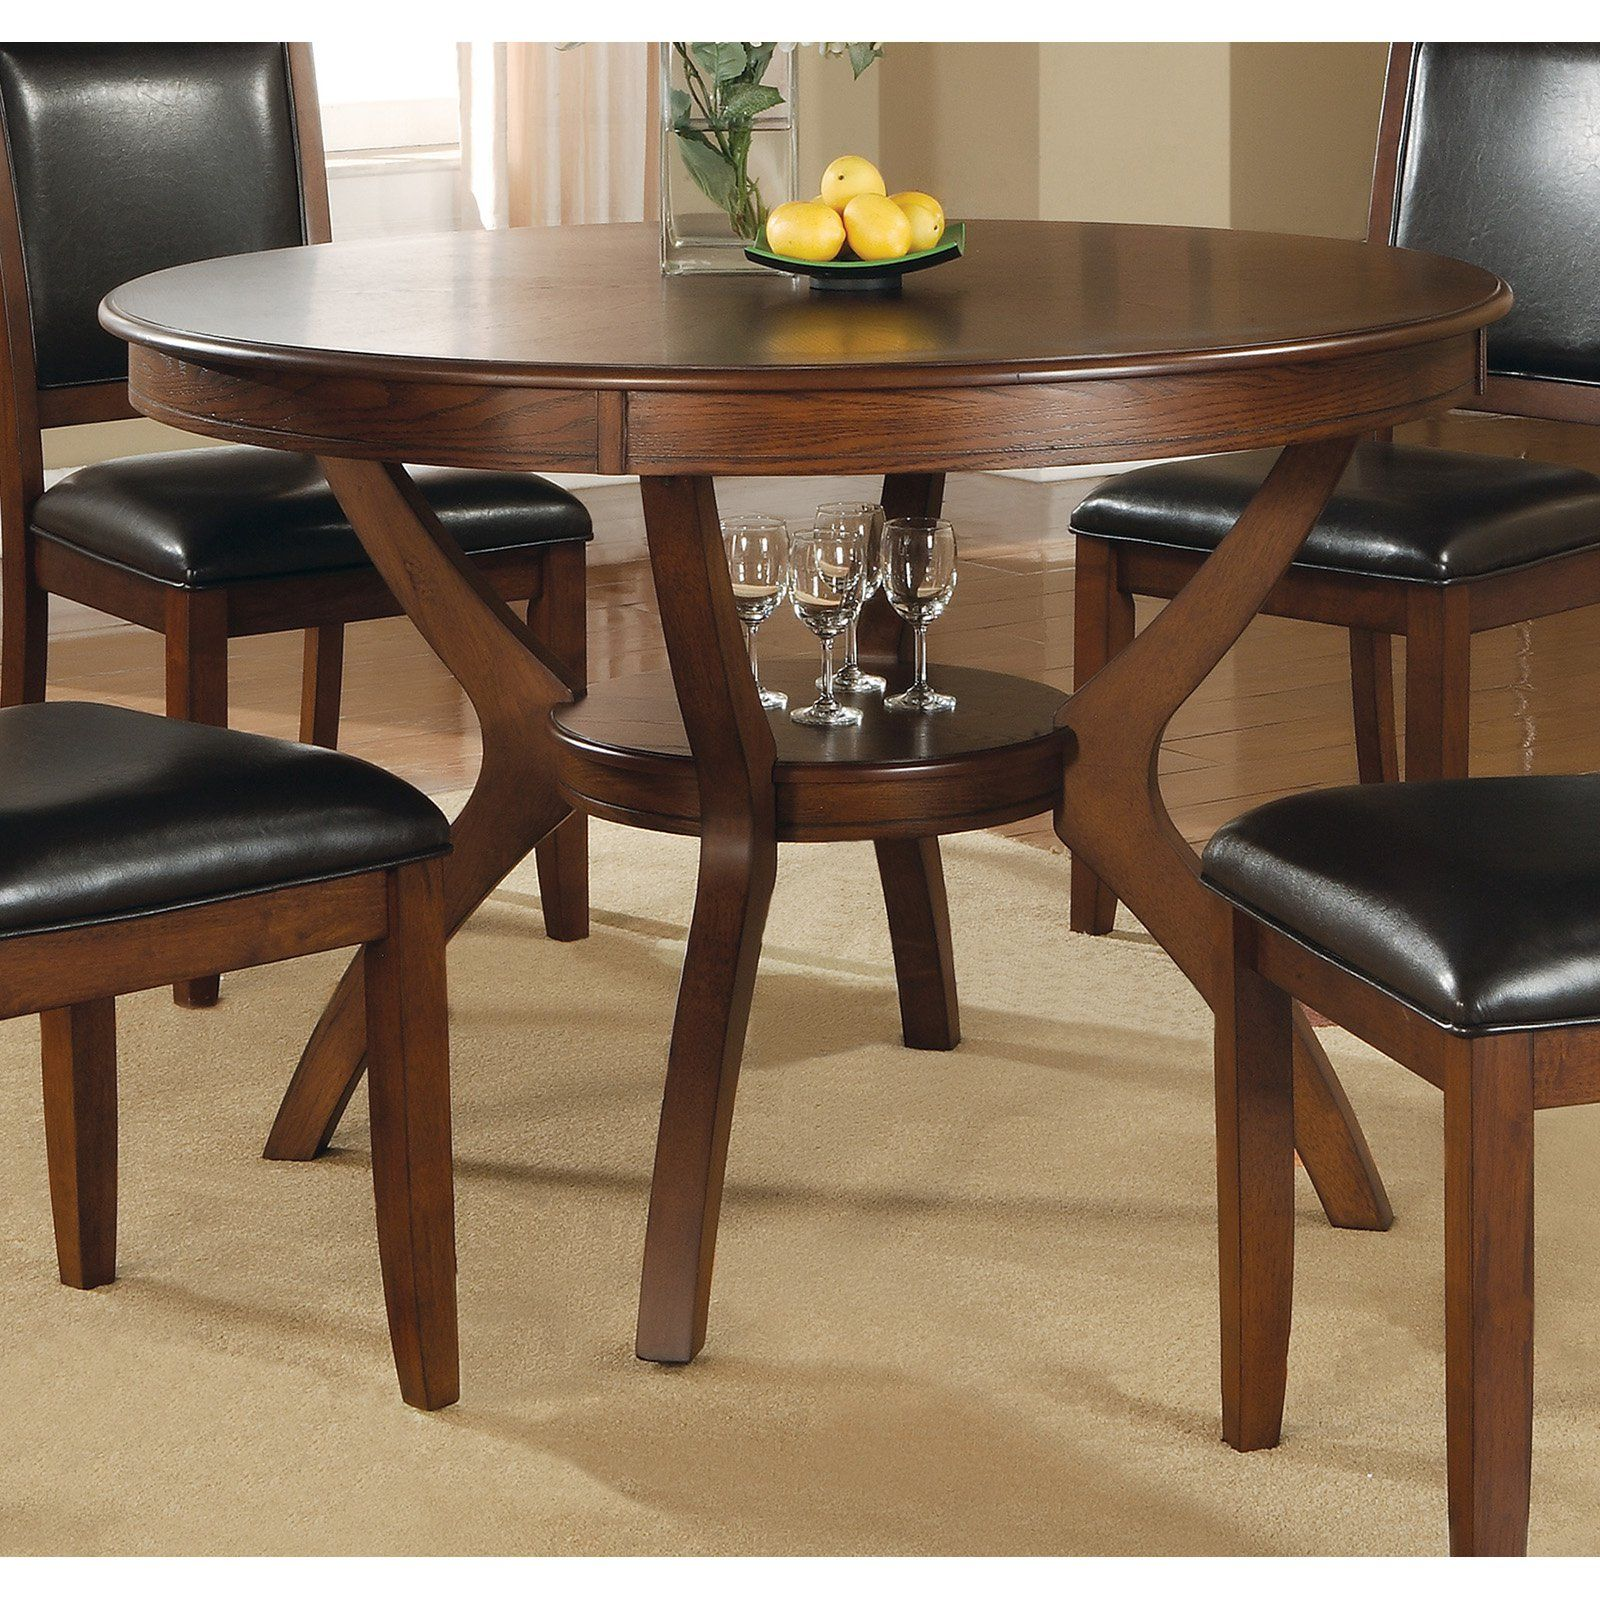 Coaster Furniture Neims Dining Table Dining Table In Kitchen